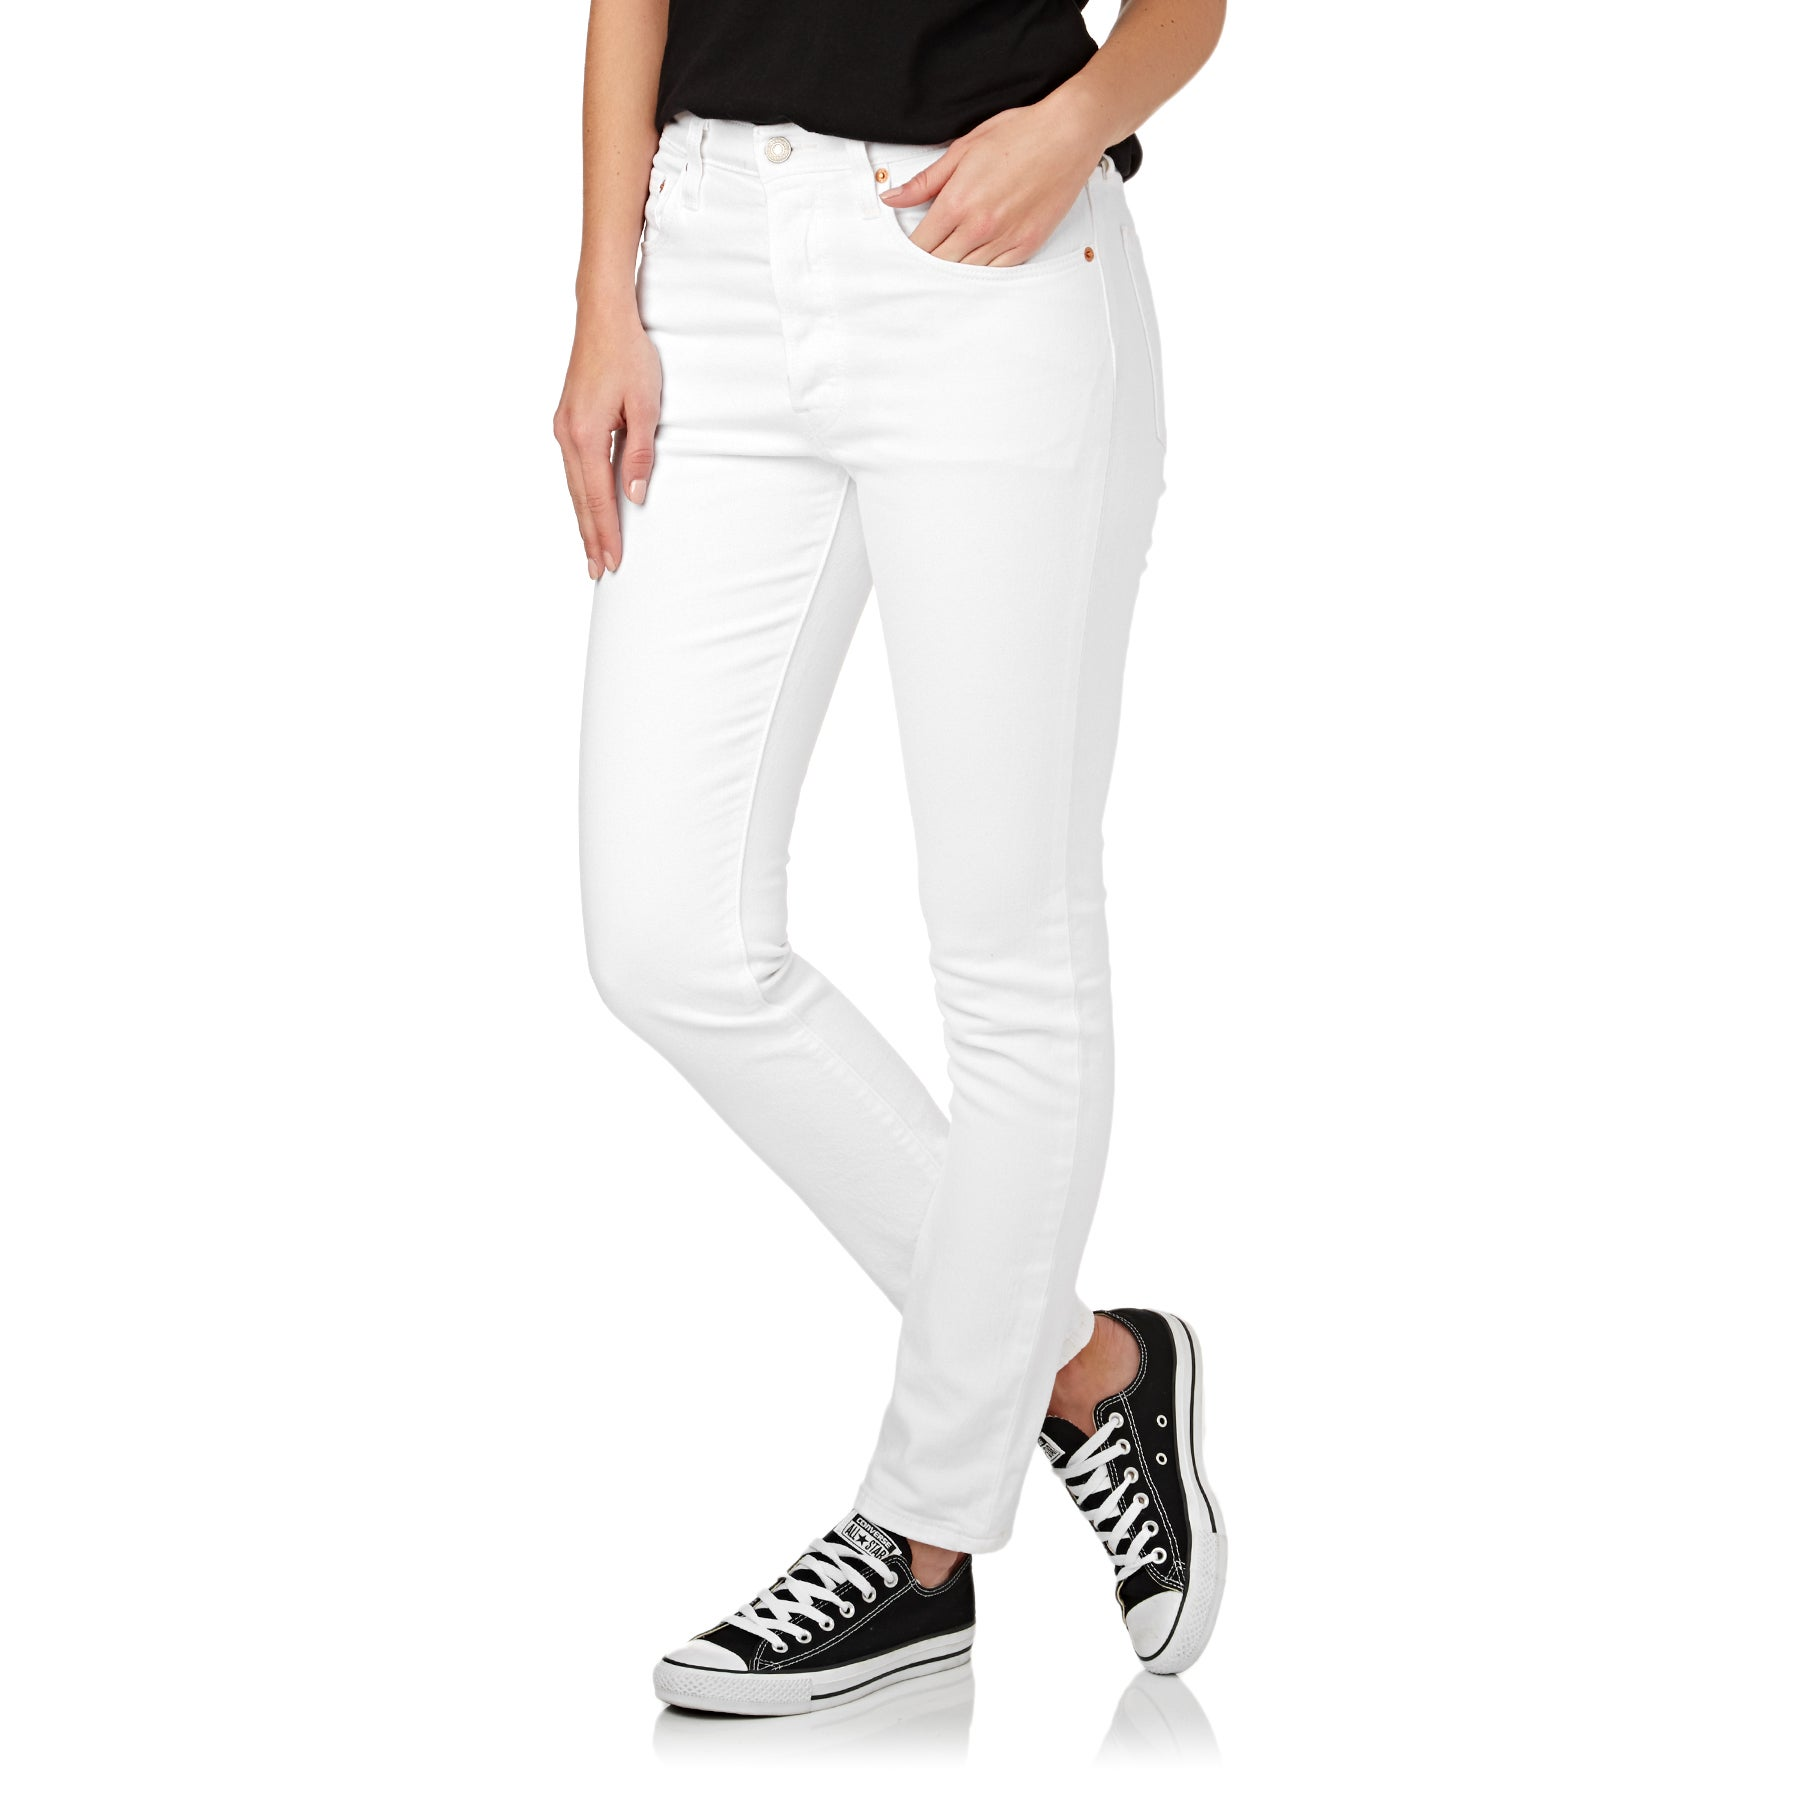 Levis 501 Skinny Damen Jeans - In The Clouds